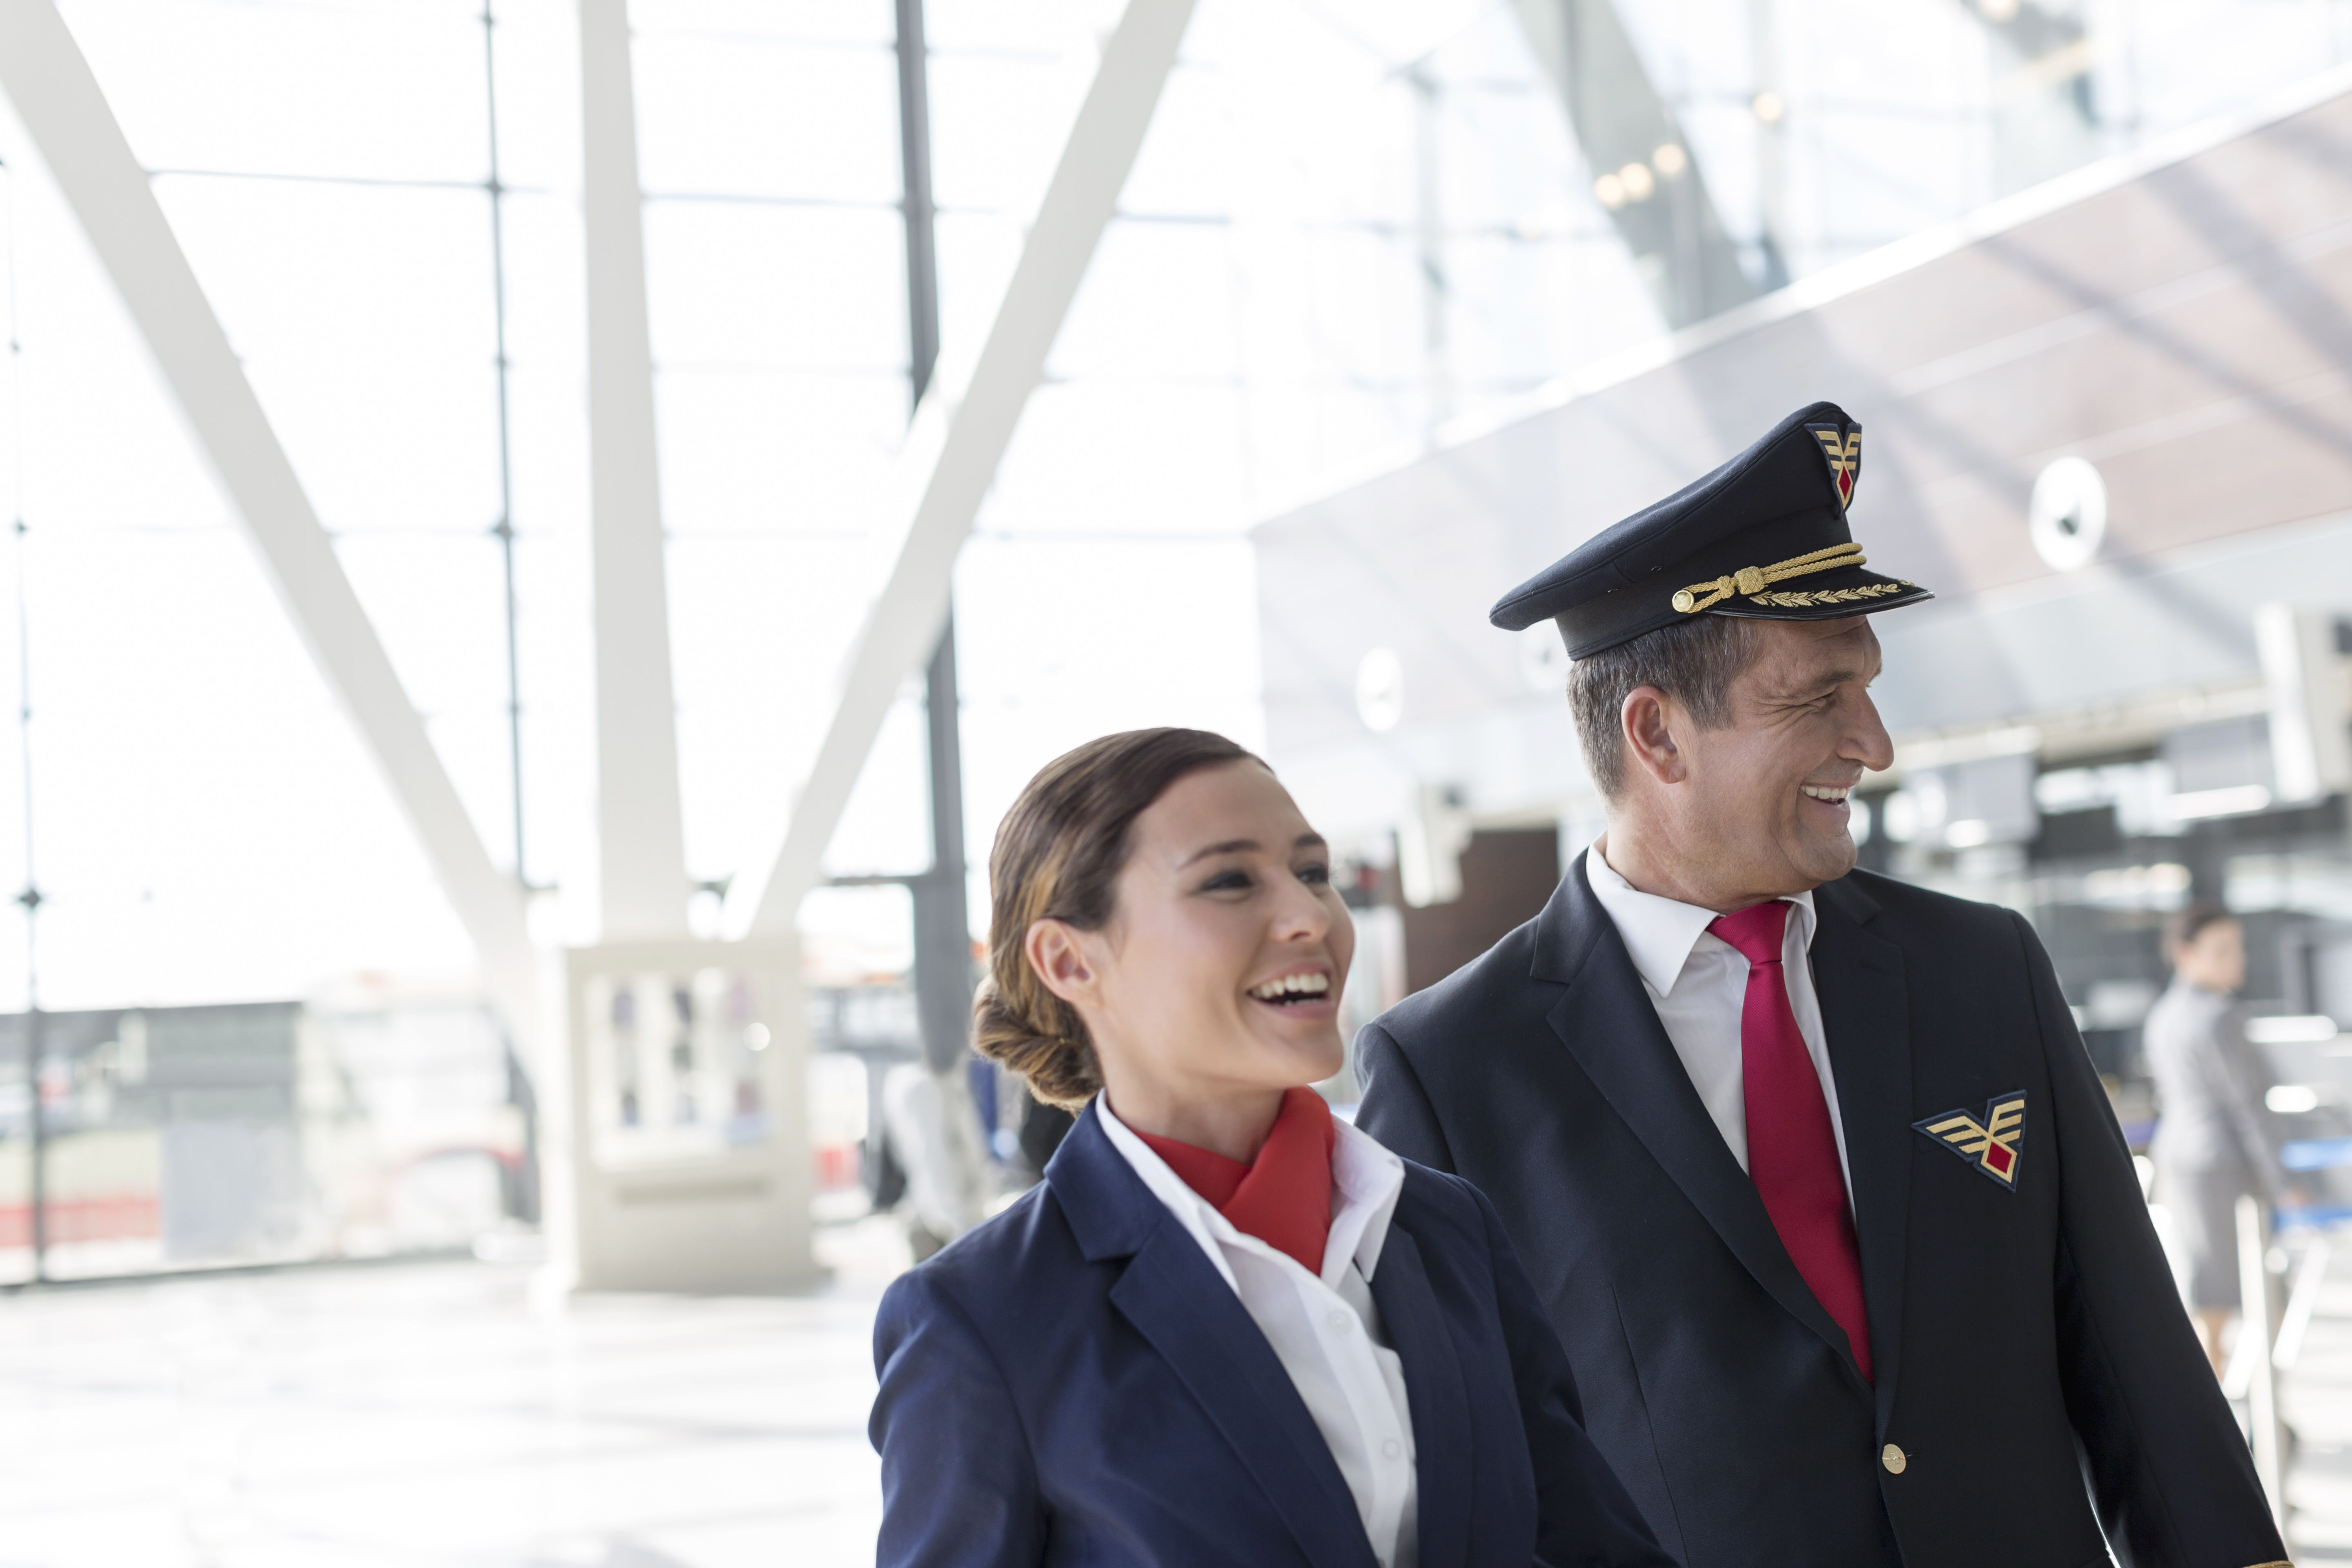 Smiling pilot and flight attendant at the airport